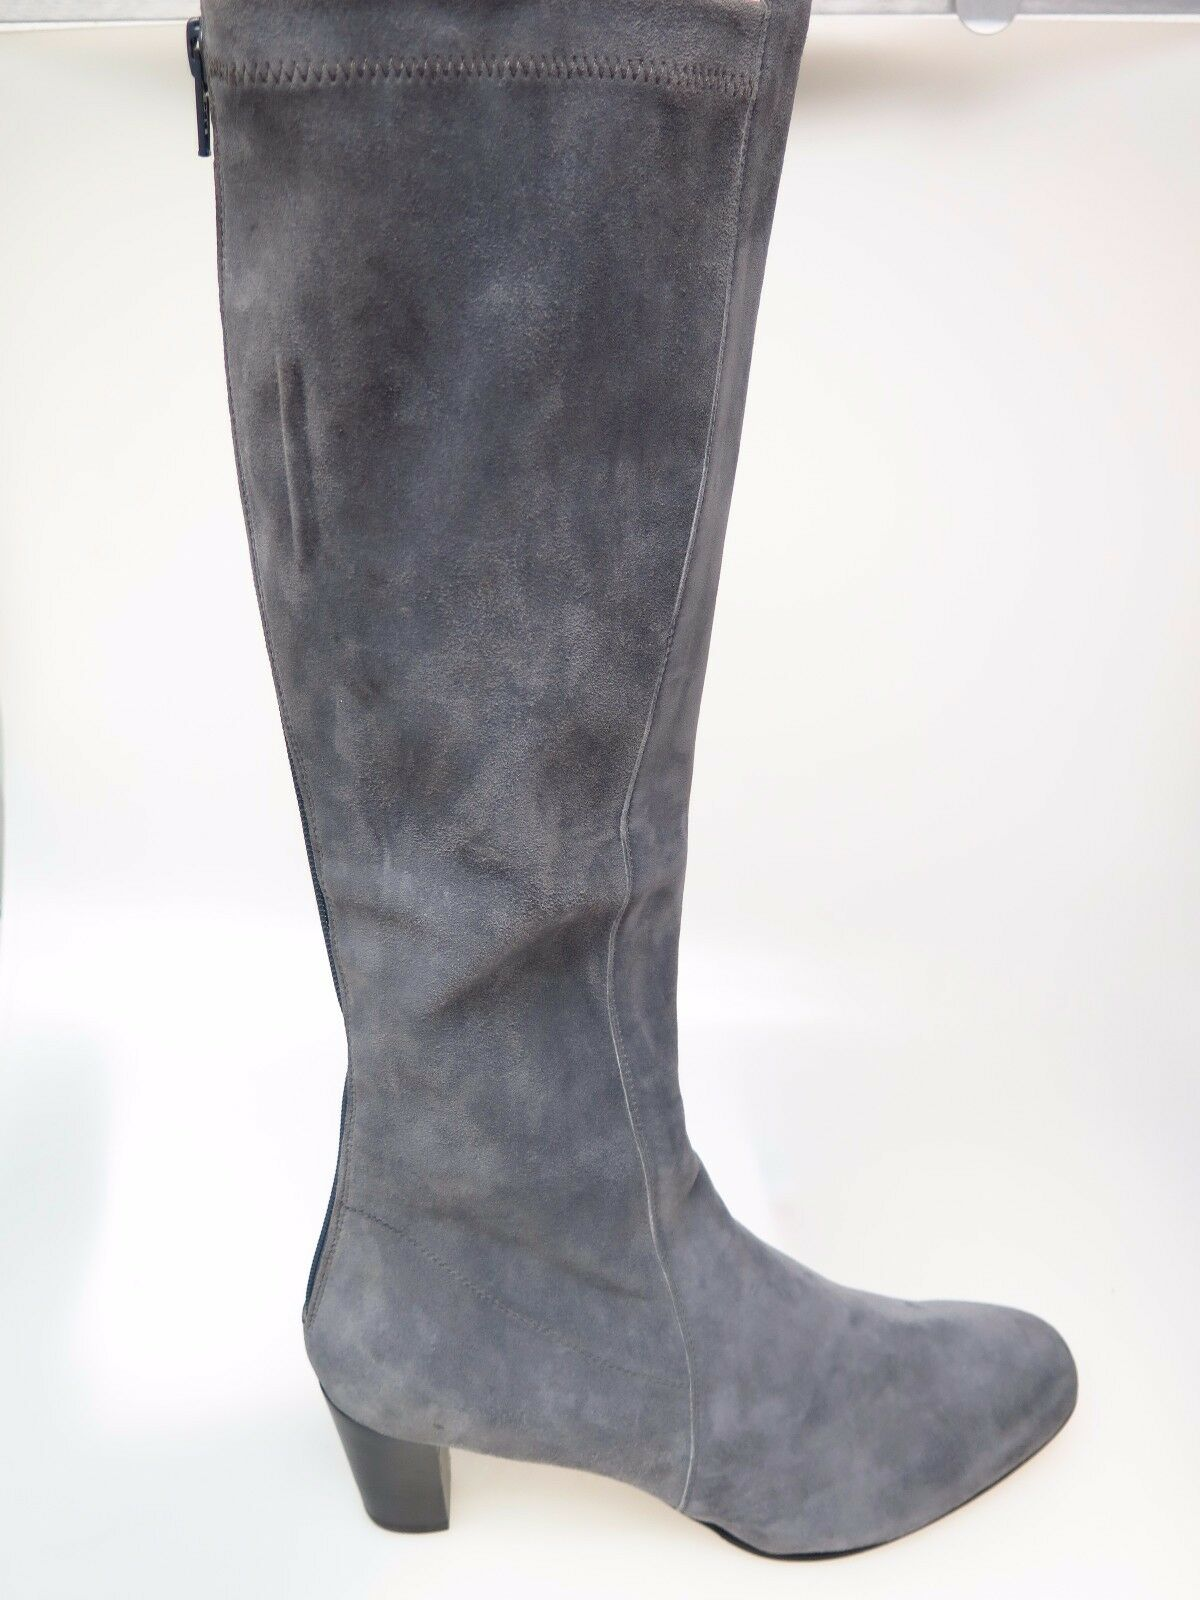 d4aa67b439d ... MARETTO Italy Chaussures femmes chaussures 850 teger Bottes Bottes  Bottes Boots véritable cuir taille 41 NEUF ...